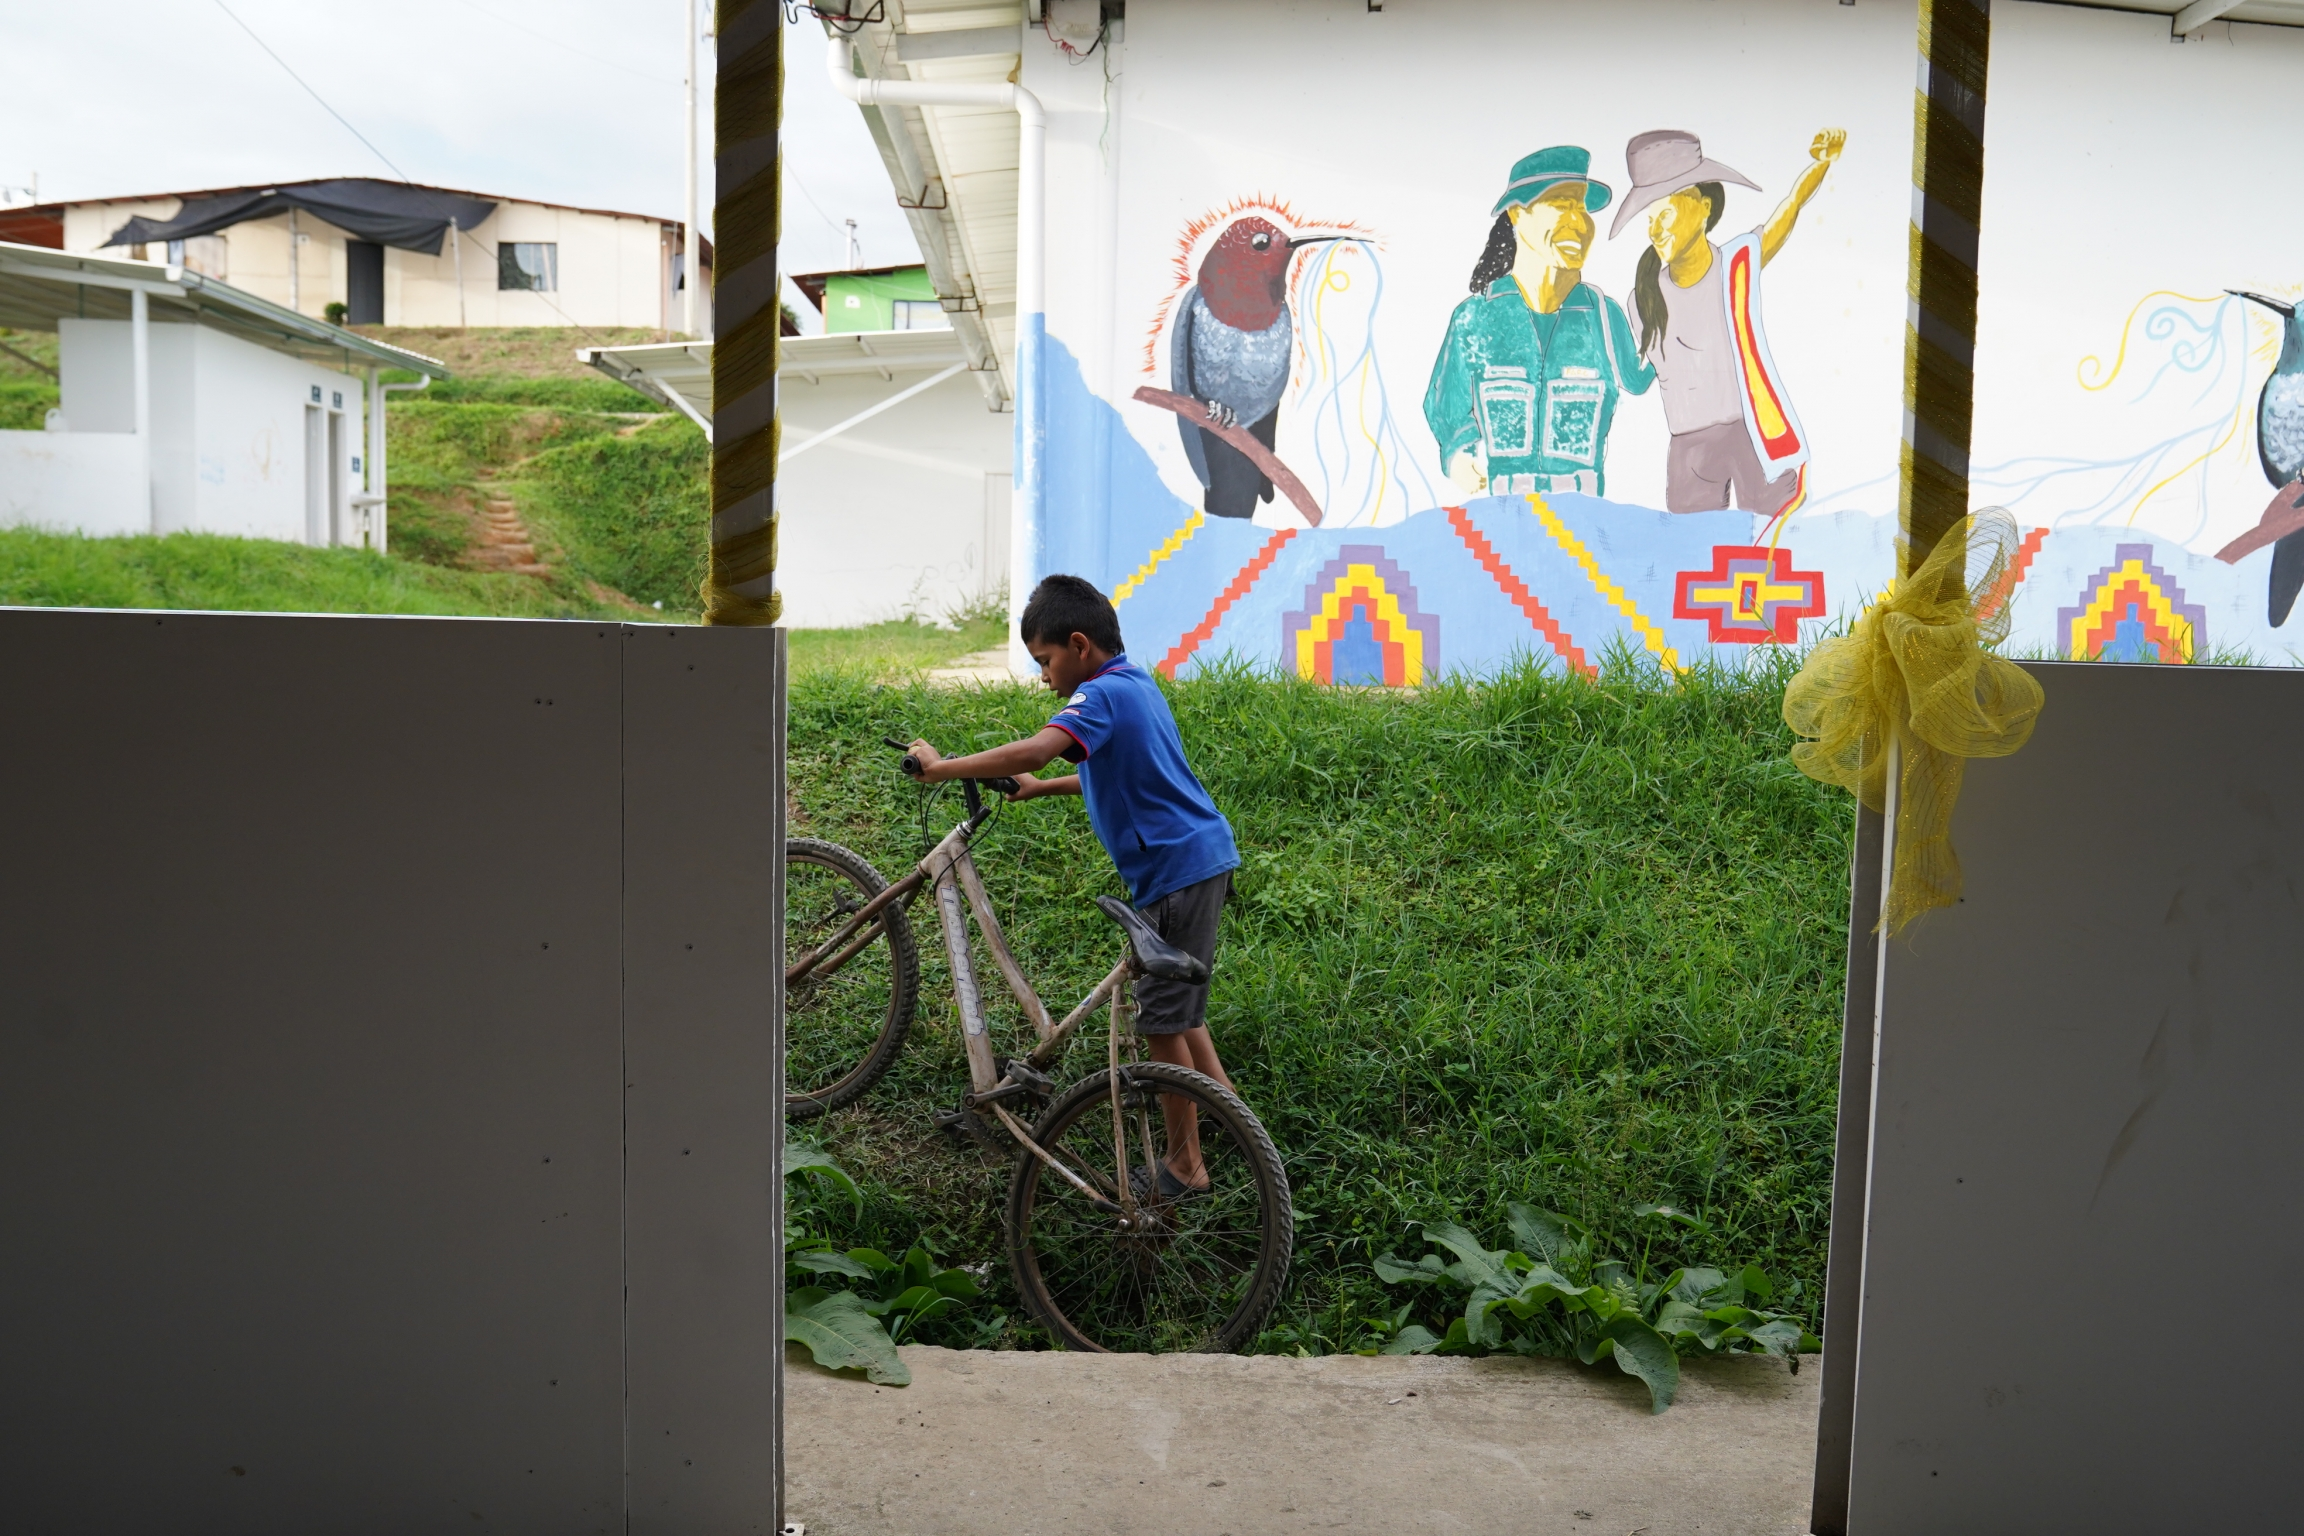 A boy rides his bike seen through a window near wall with mural